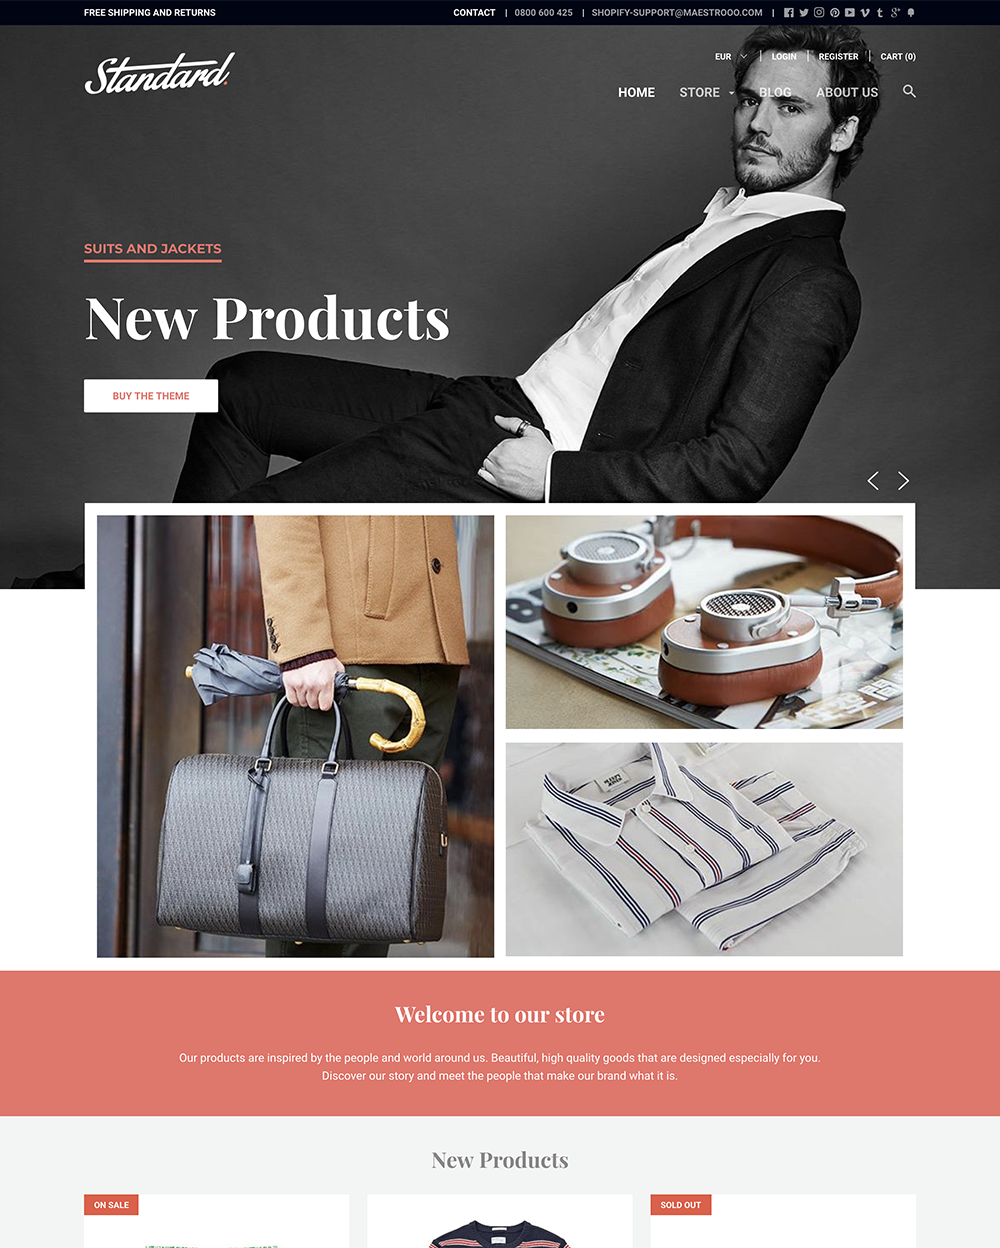 Standard Theme Focal Ecommerce Website Template - Shopify design templates